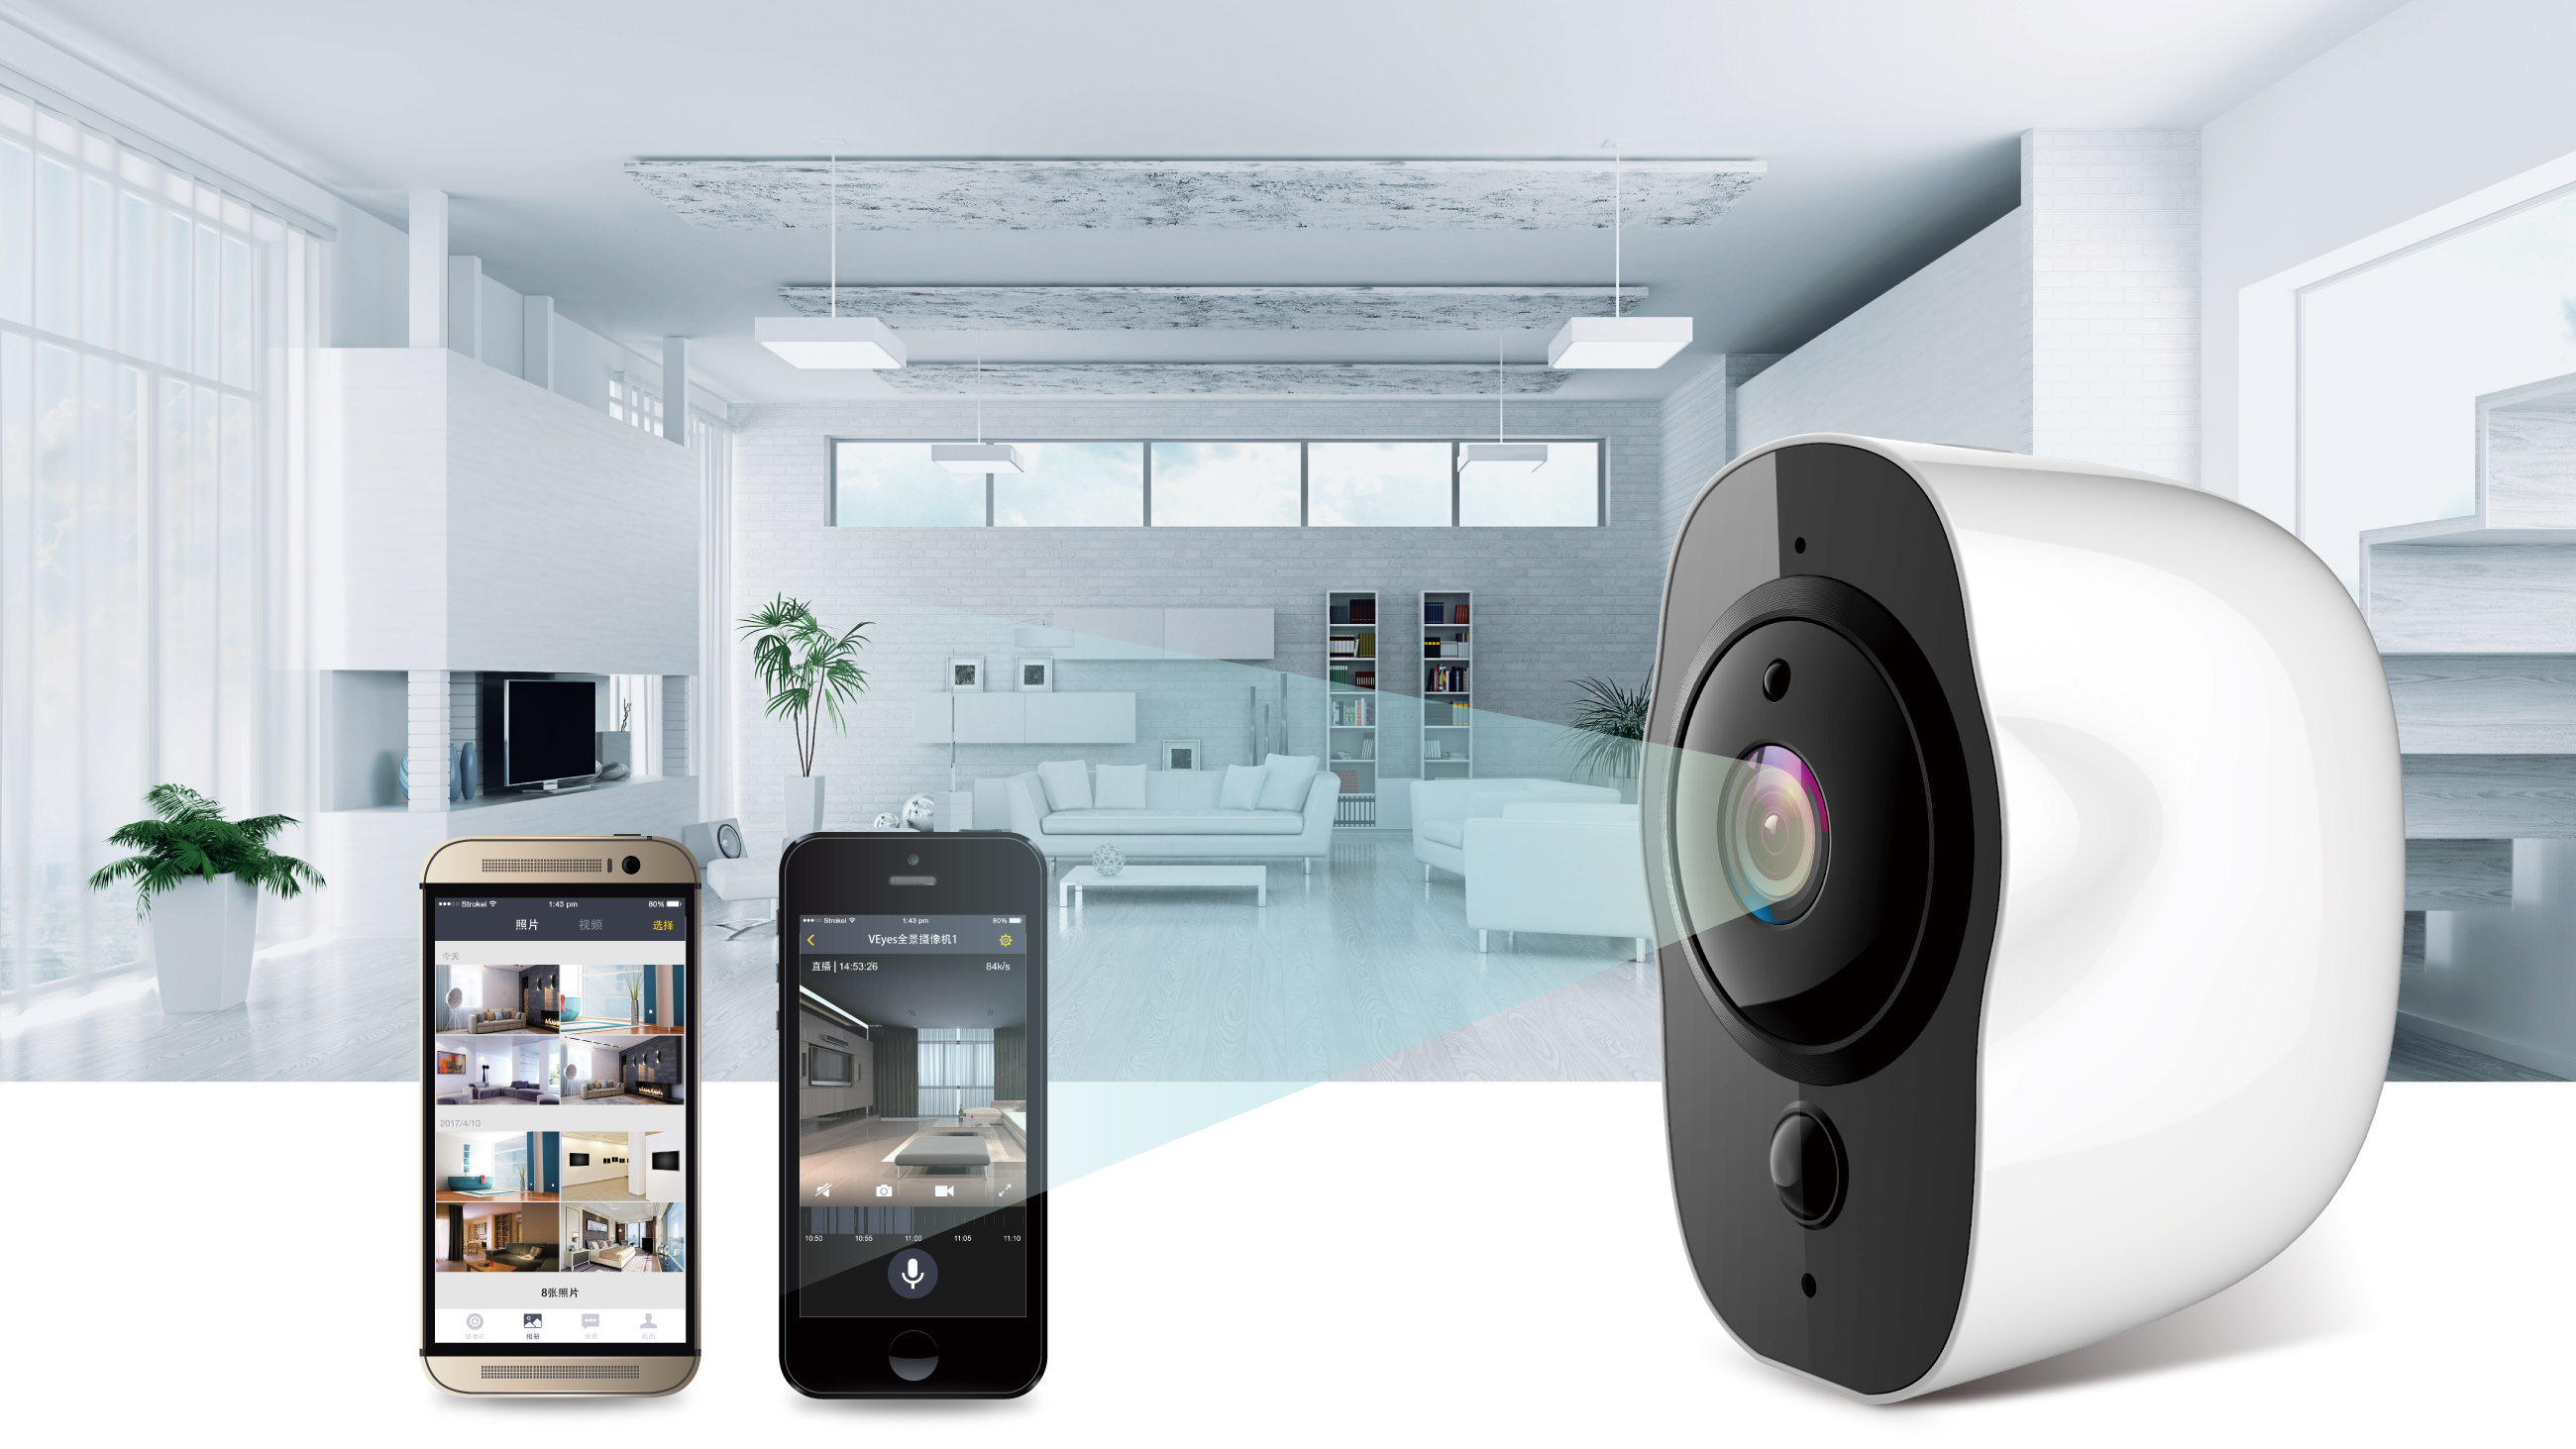 VPai Home Wireless Home Security and Video Monitoring System